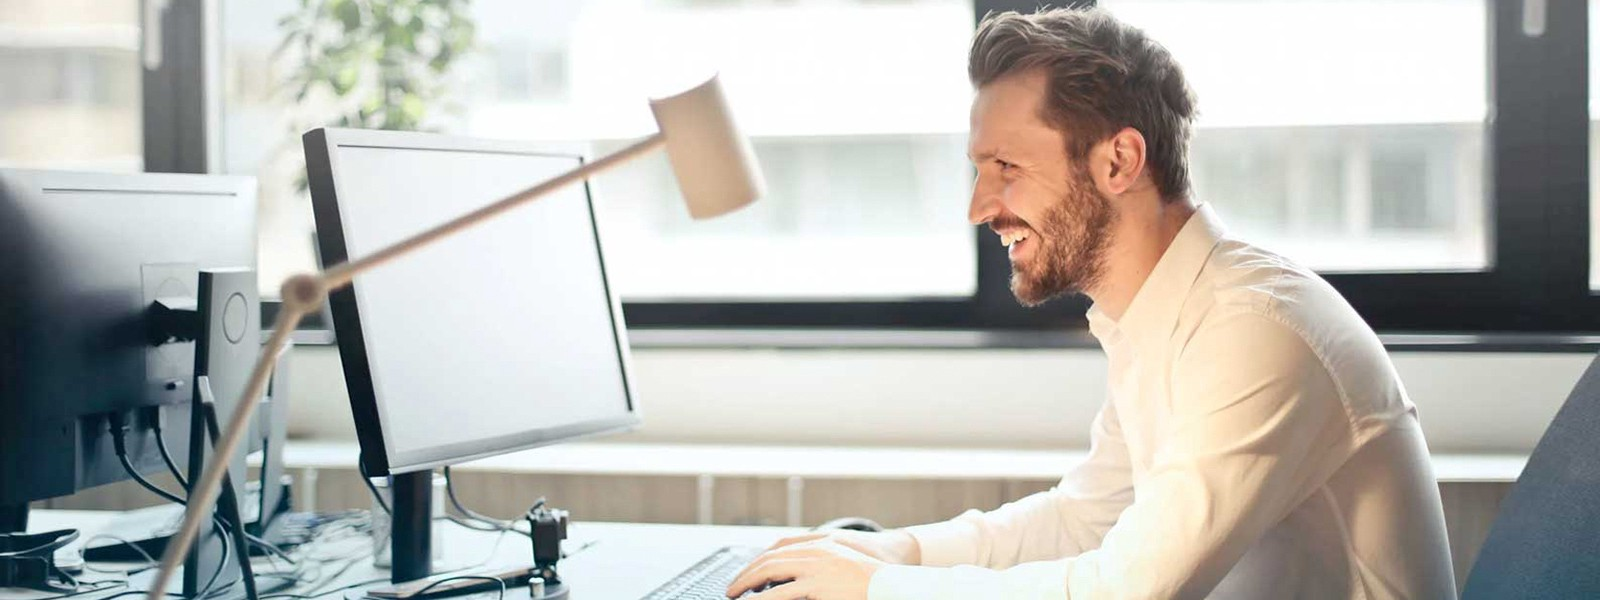 Man sitting at his desk smiling while using his computer